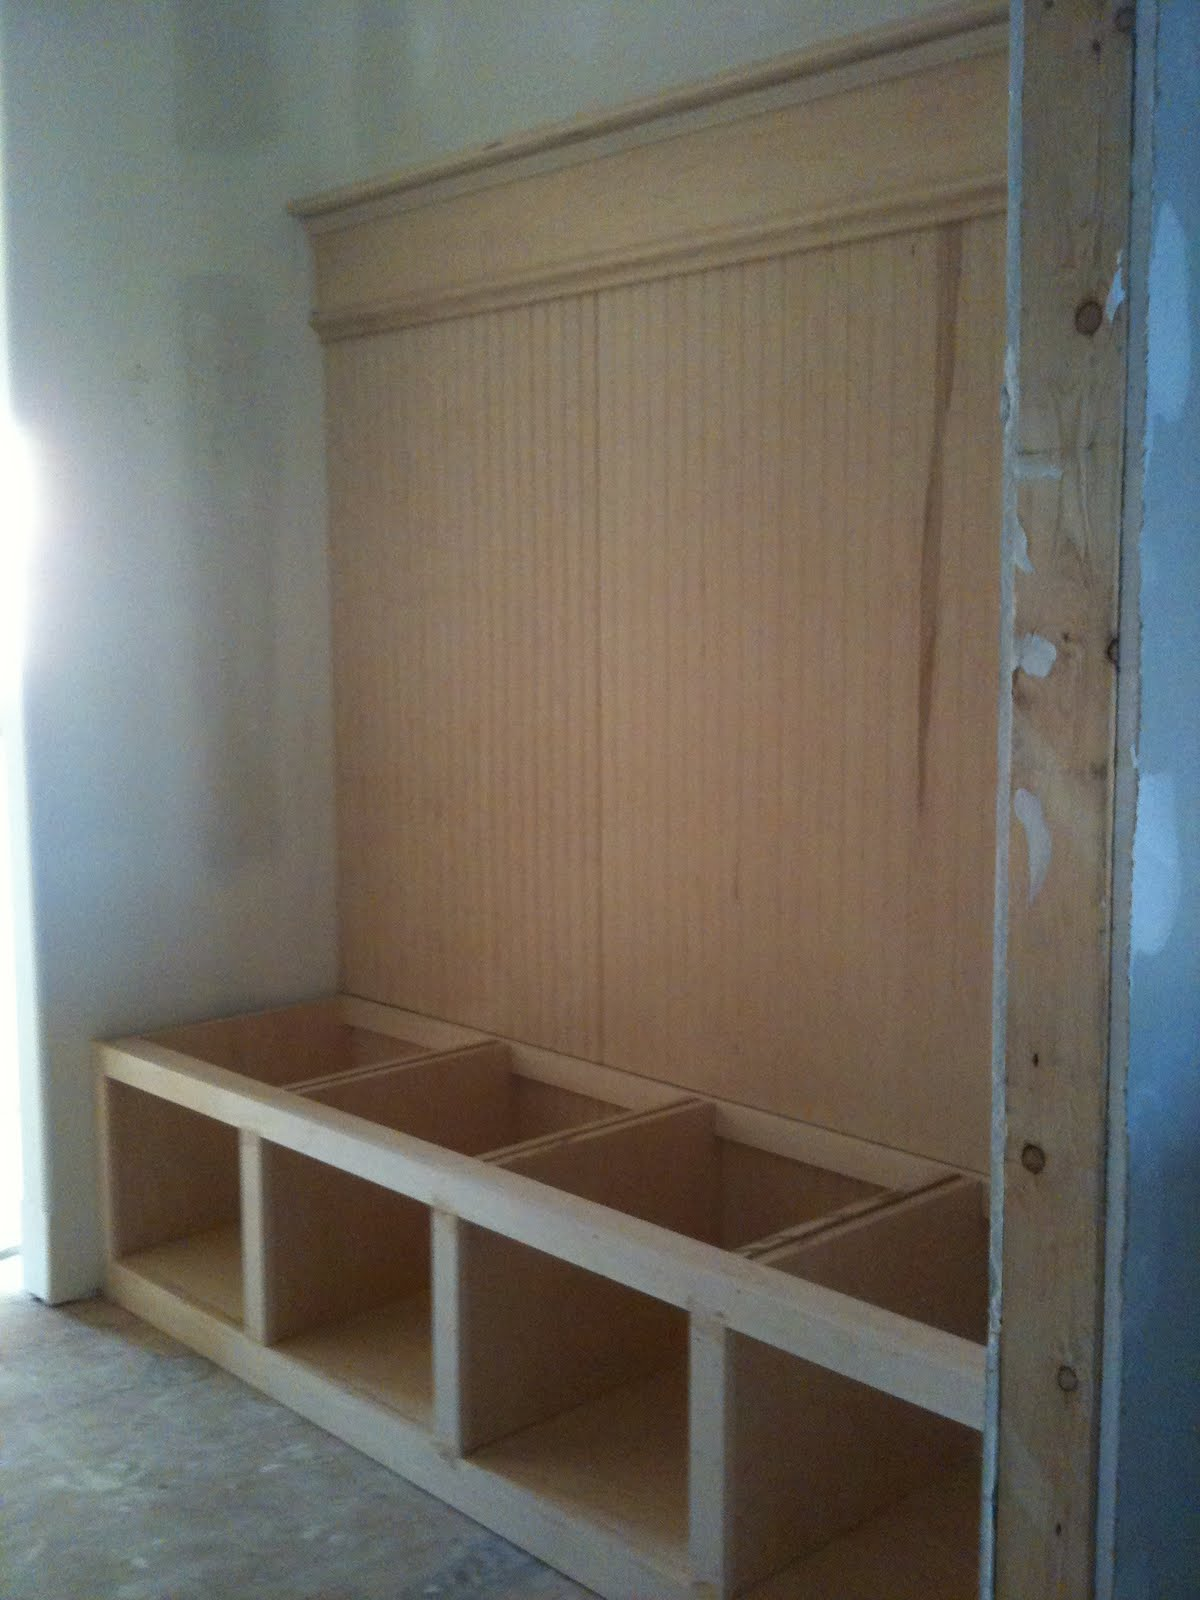 Mud Room Bench Plans PDF woodworking projects school